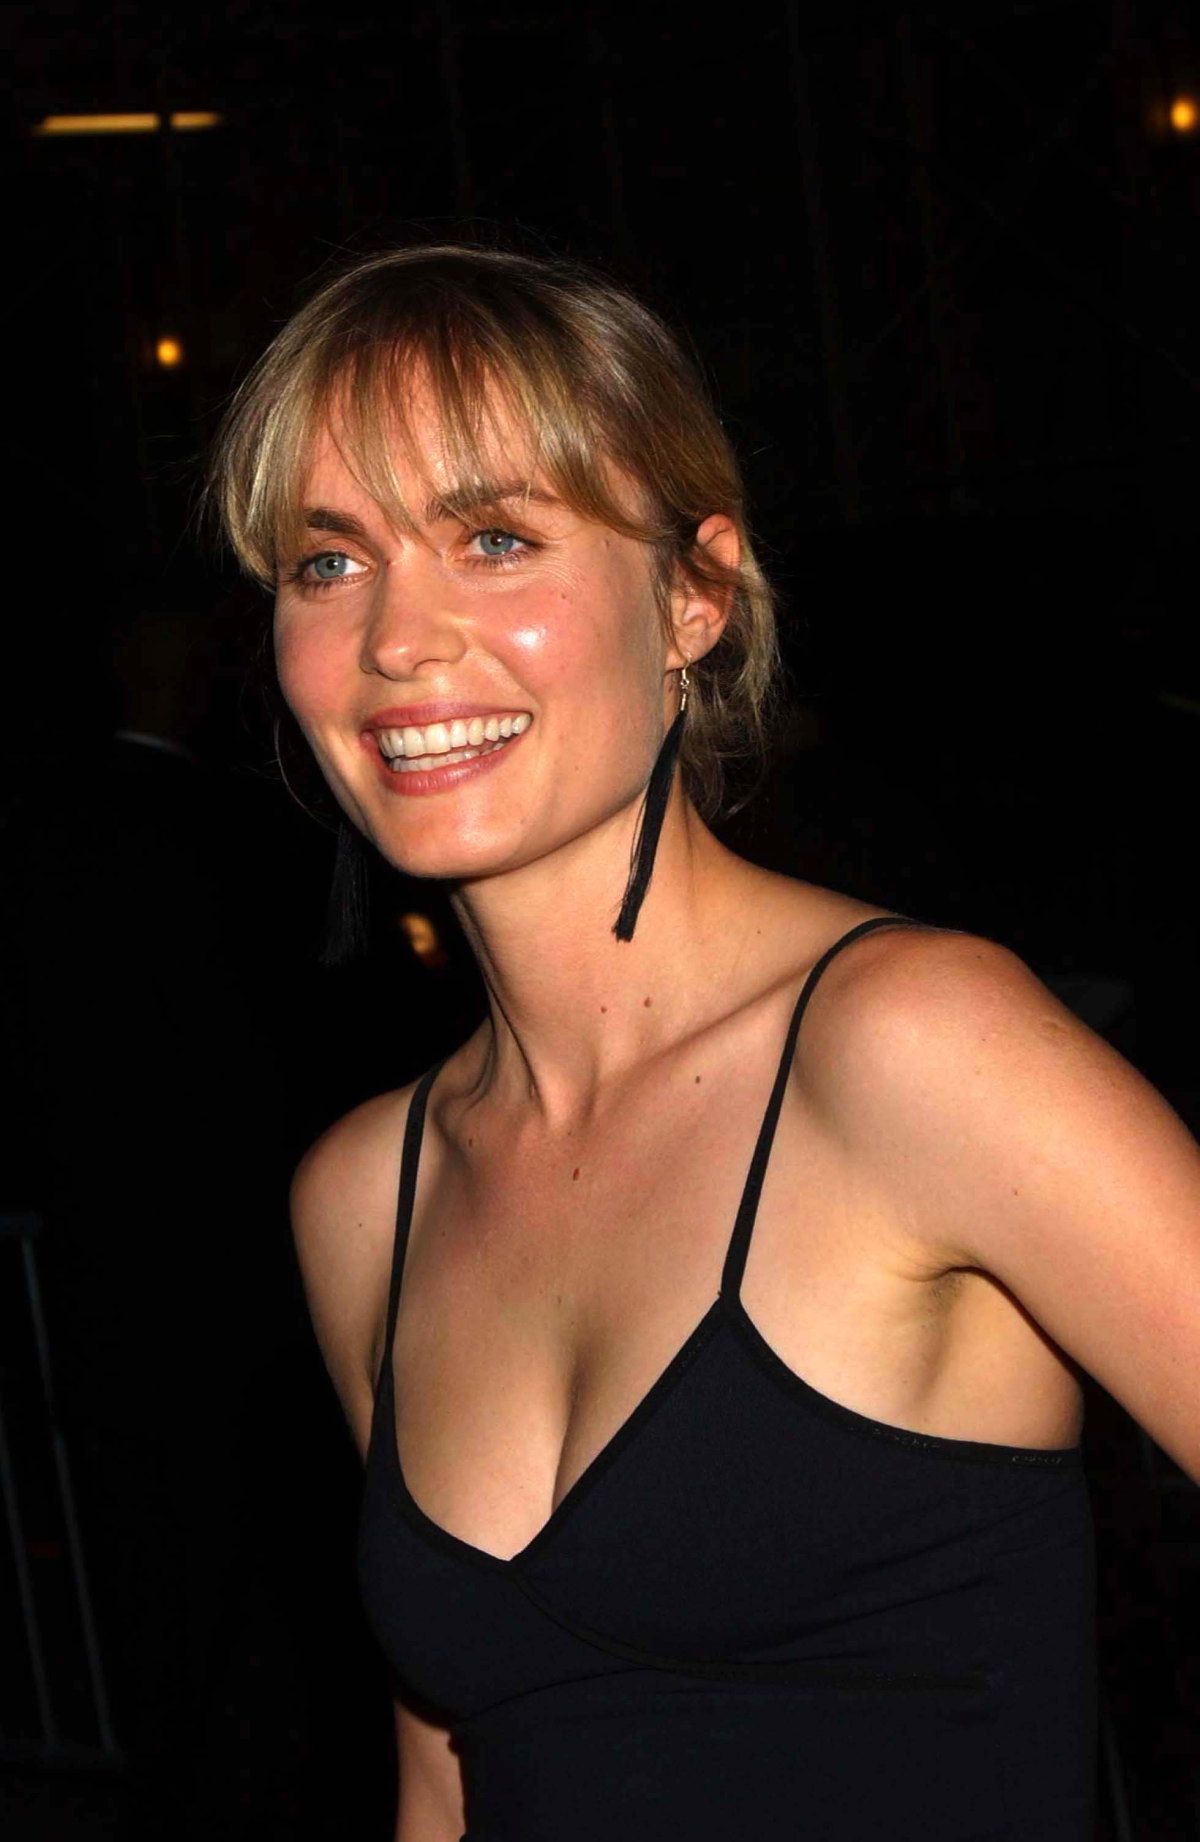 Pictures Radha Mitchell nude photos 2019